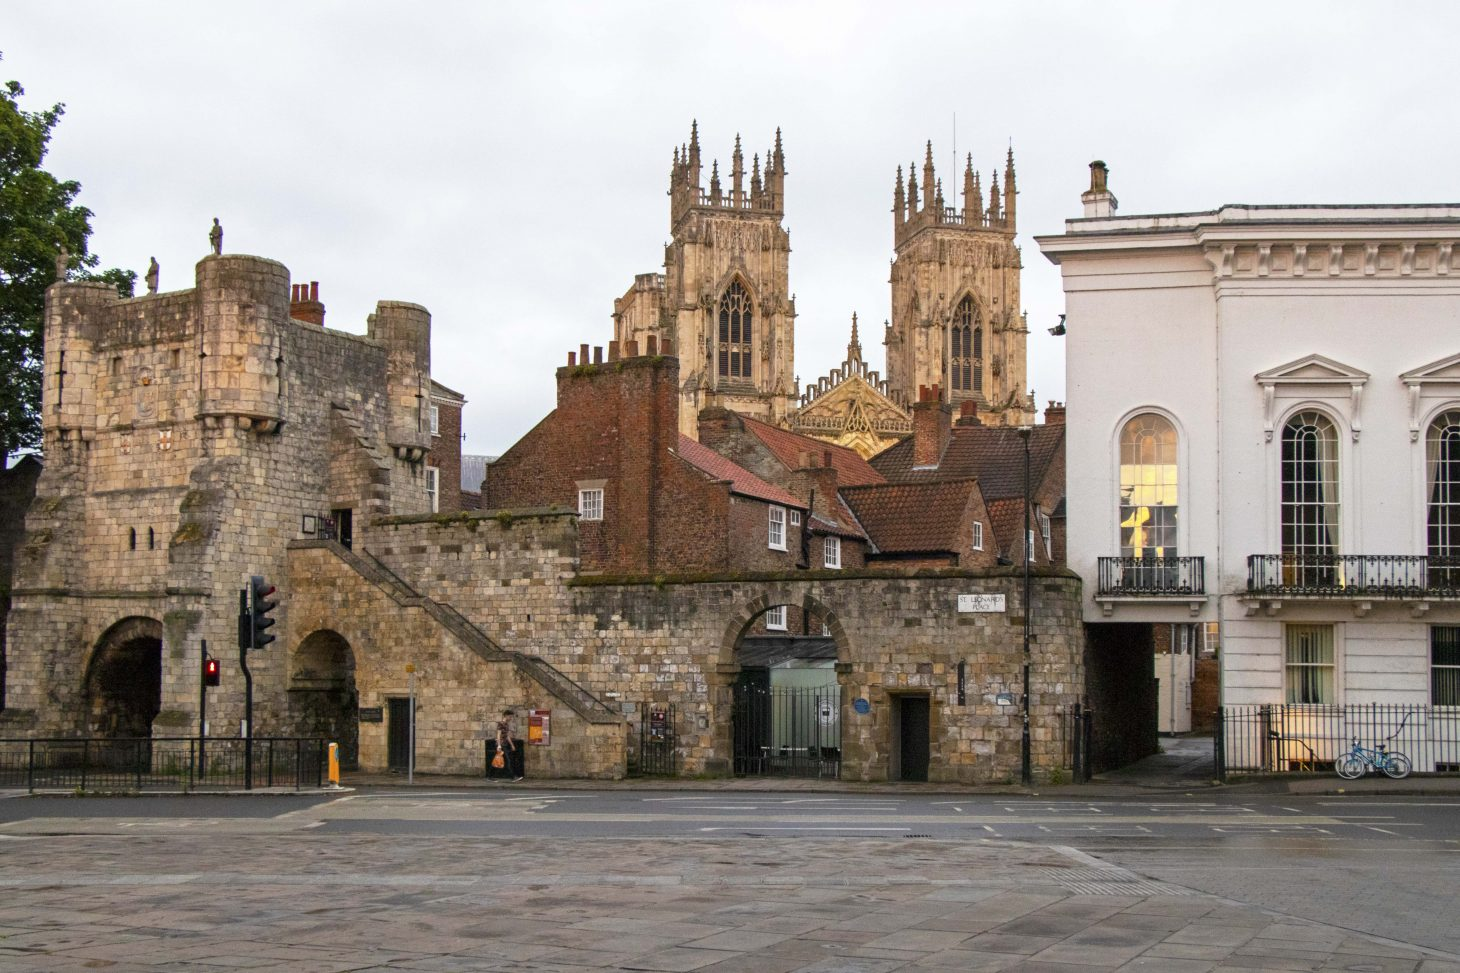 York's city walls are open from 8am daily